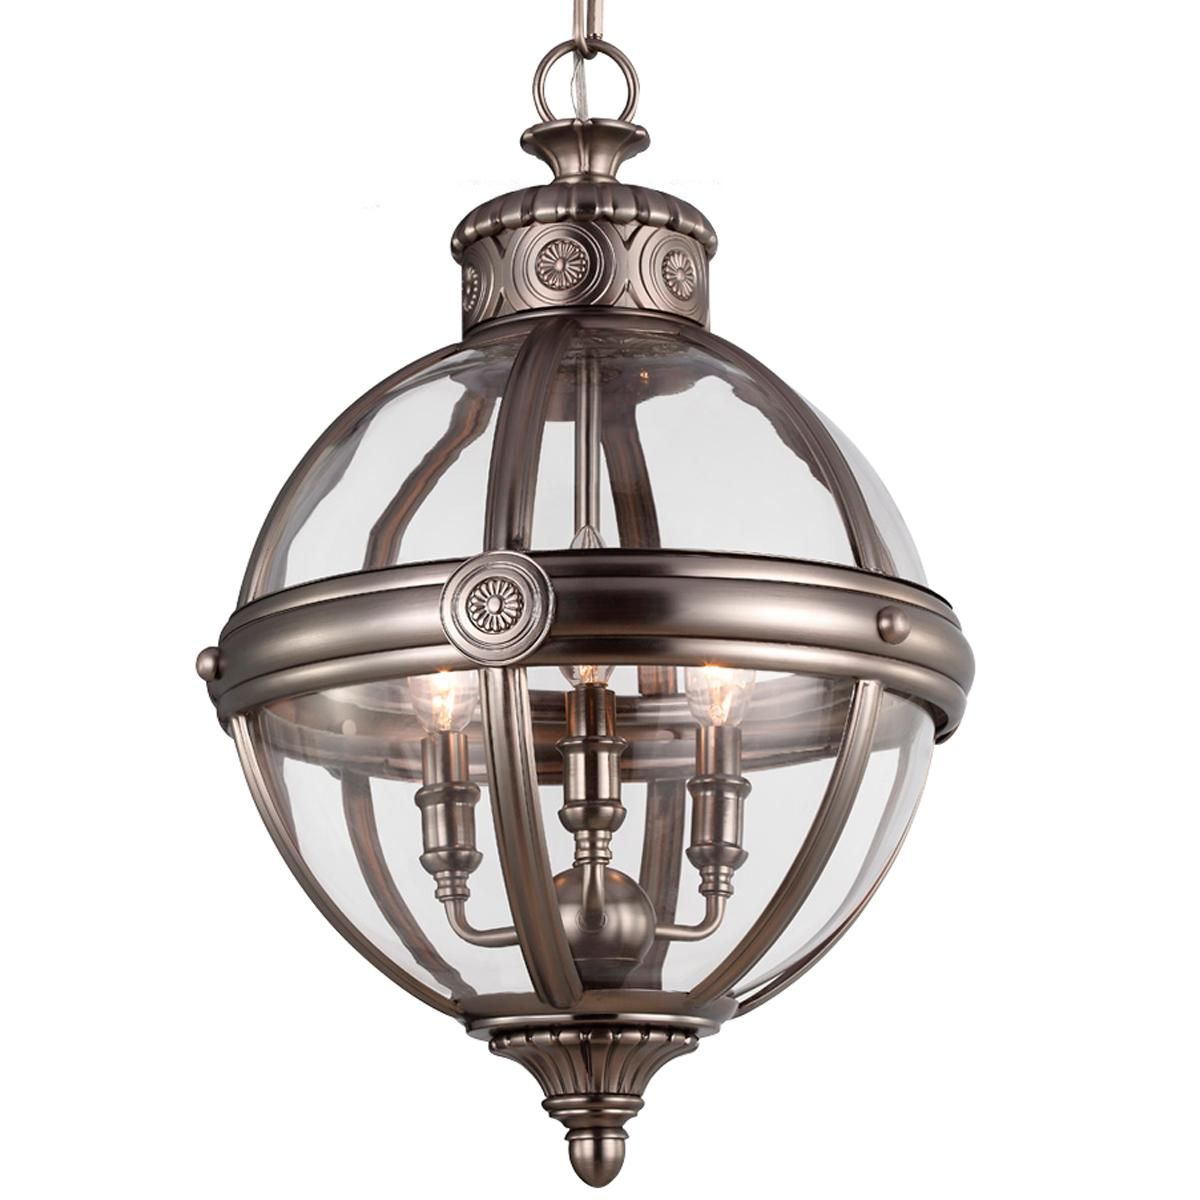 attractive restoration pendant lighting to elegant light vintage furniture for intended loft pertaining kitchen from hardware rh